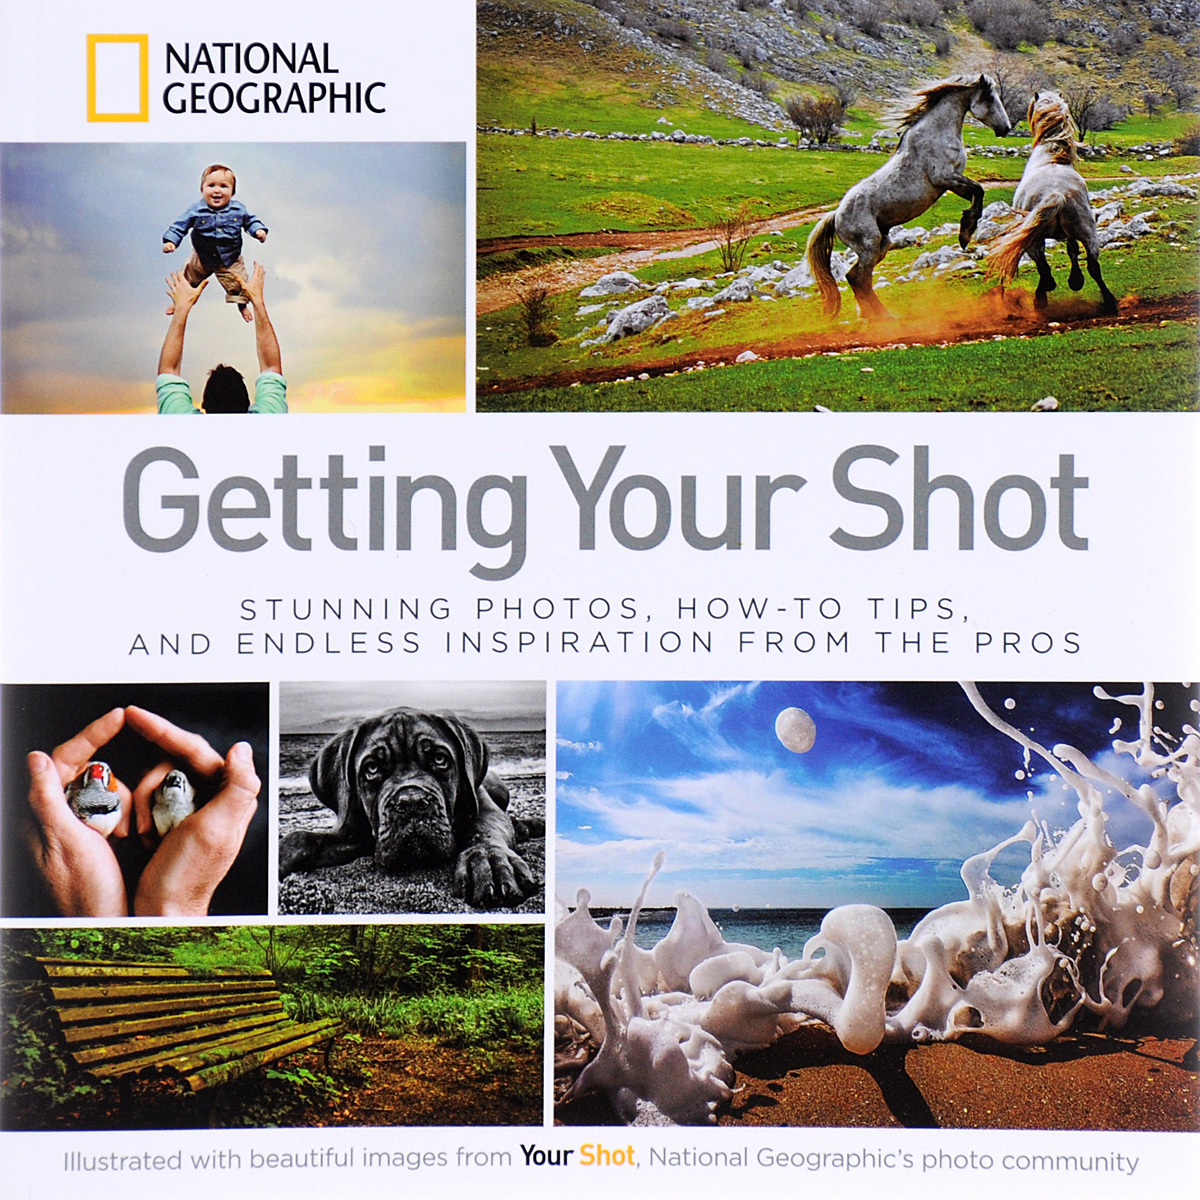 Getting Your Shot: Stunning Photos, How-to Tips, and Endless Inspiration From the Pros jim hornickel negotiating success tips and tools for building rapport and dissolving conflict while still getting what you want